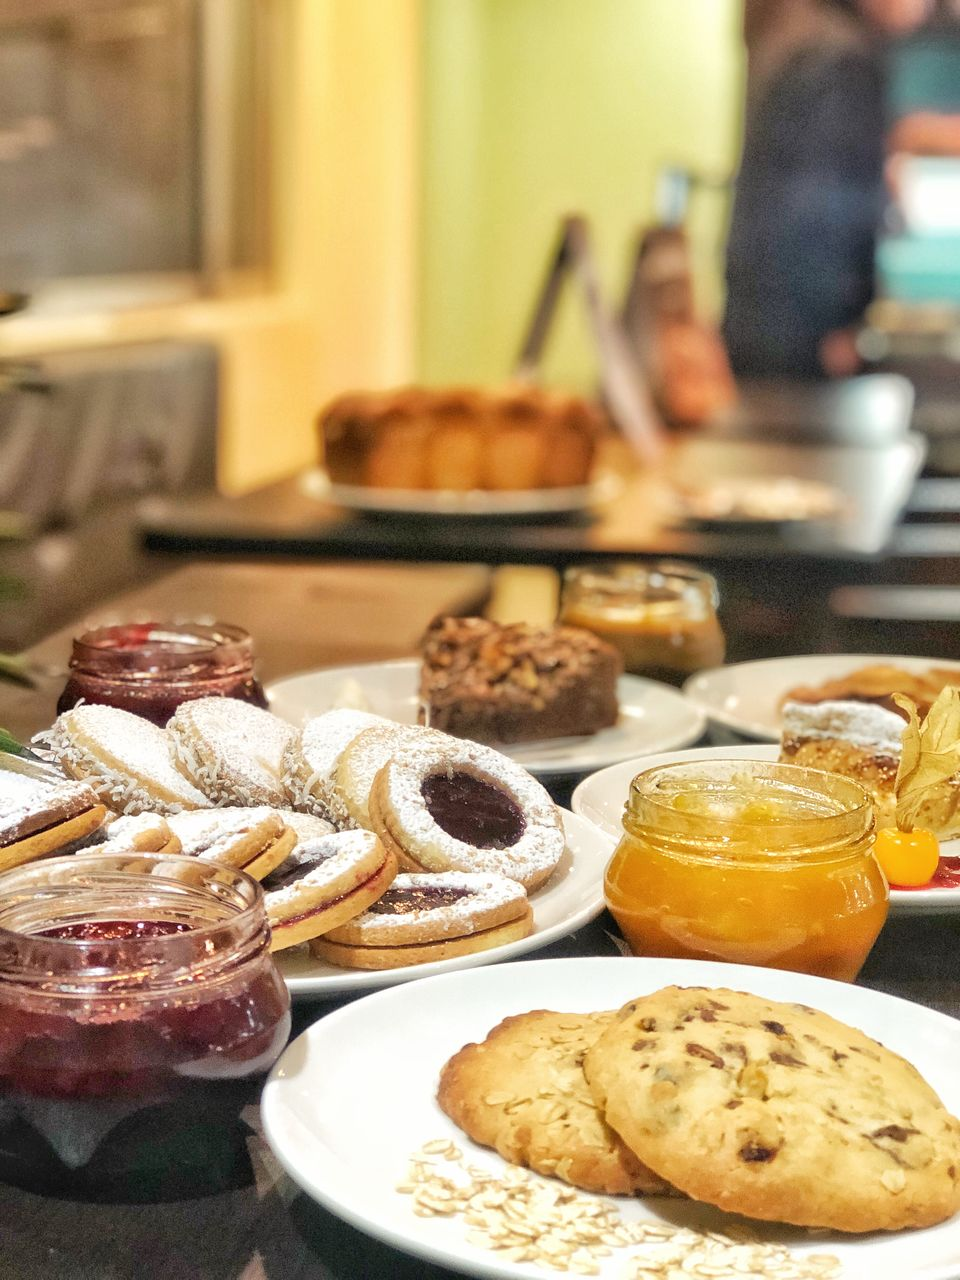 food and drink, food, freshness, table, indoors, ready-to-eat, still life, plate, focus on foreground, baked, sweet food, serving size, dessert, cake, choice, indulgence, sweet, unhealthy eating, temptation, variation, glass, snack, muffin